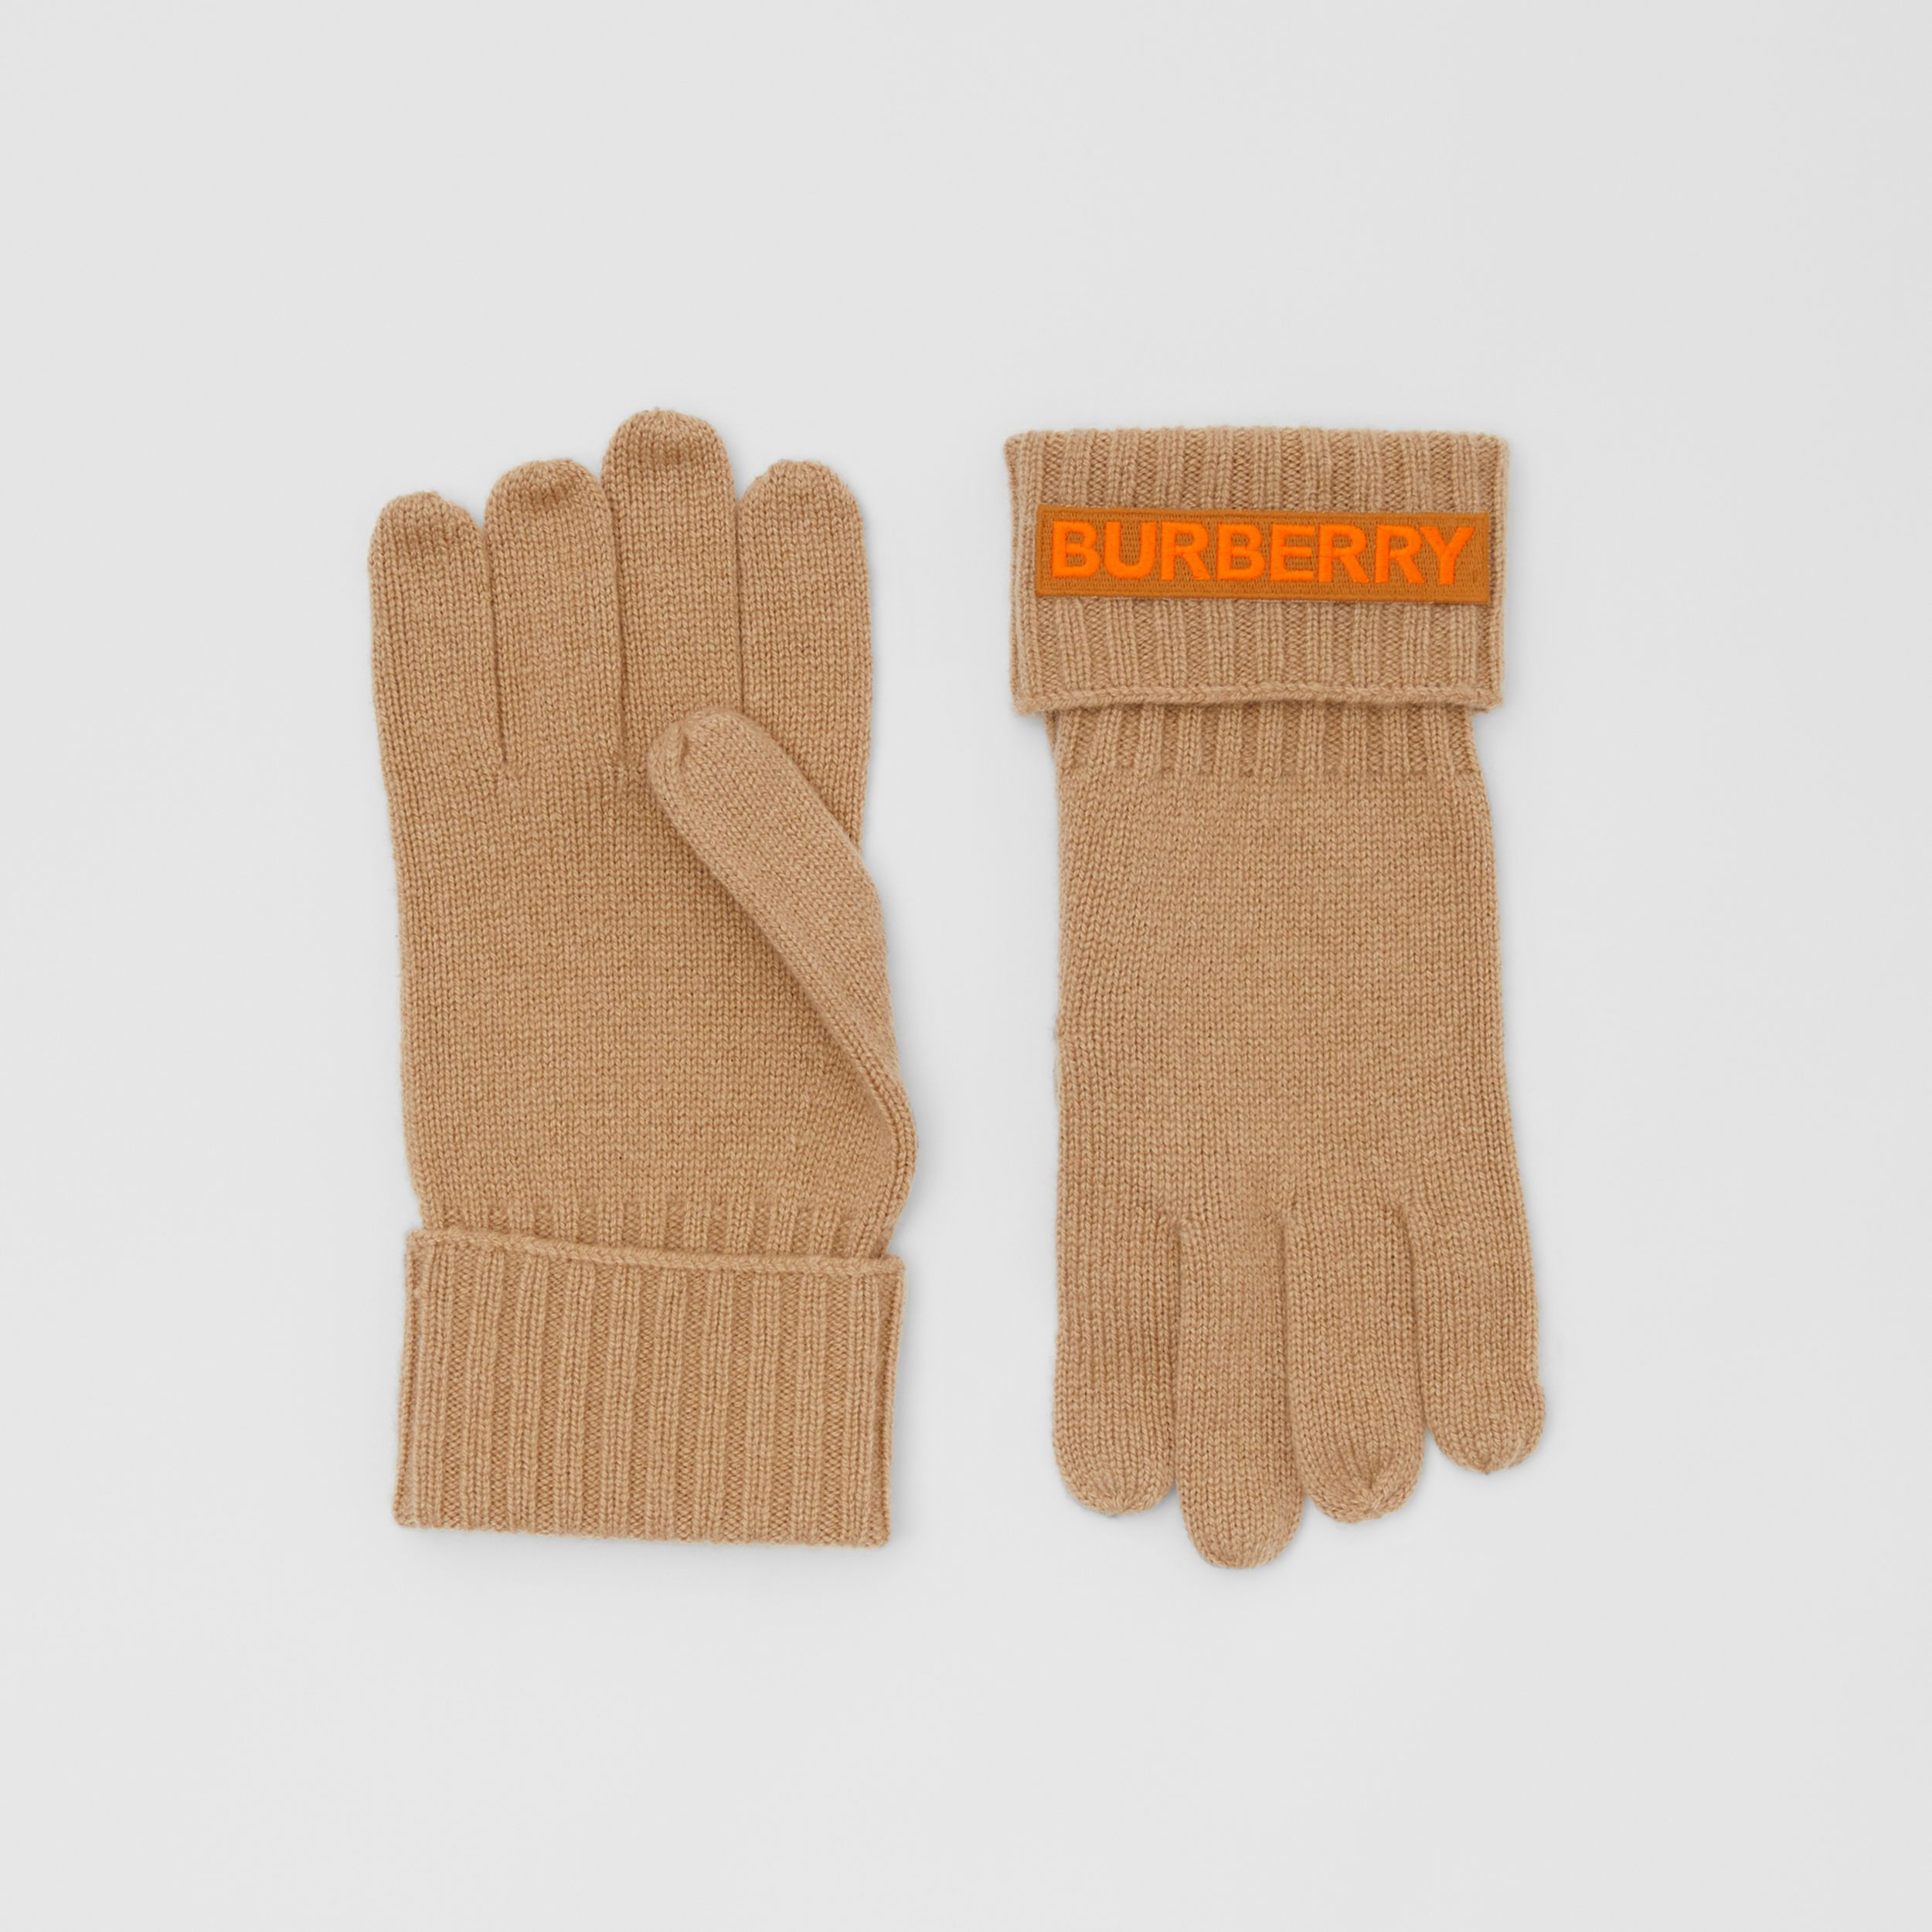 Kingdom and Logo Appliqué Cashmere Gloves in Archive Beige | Burberry - 1